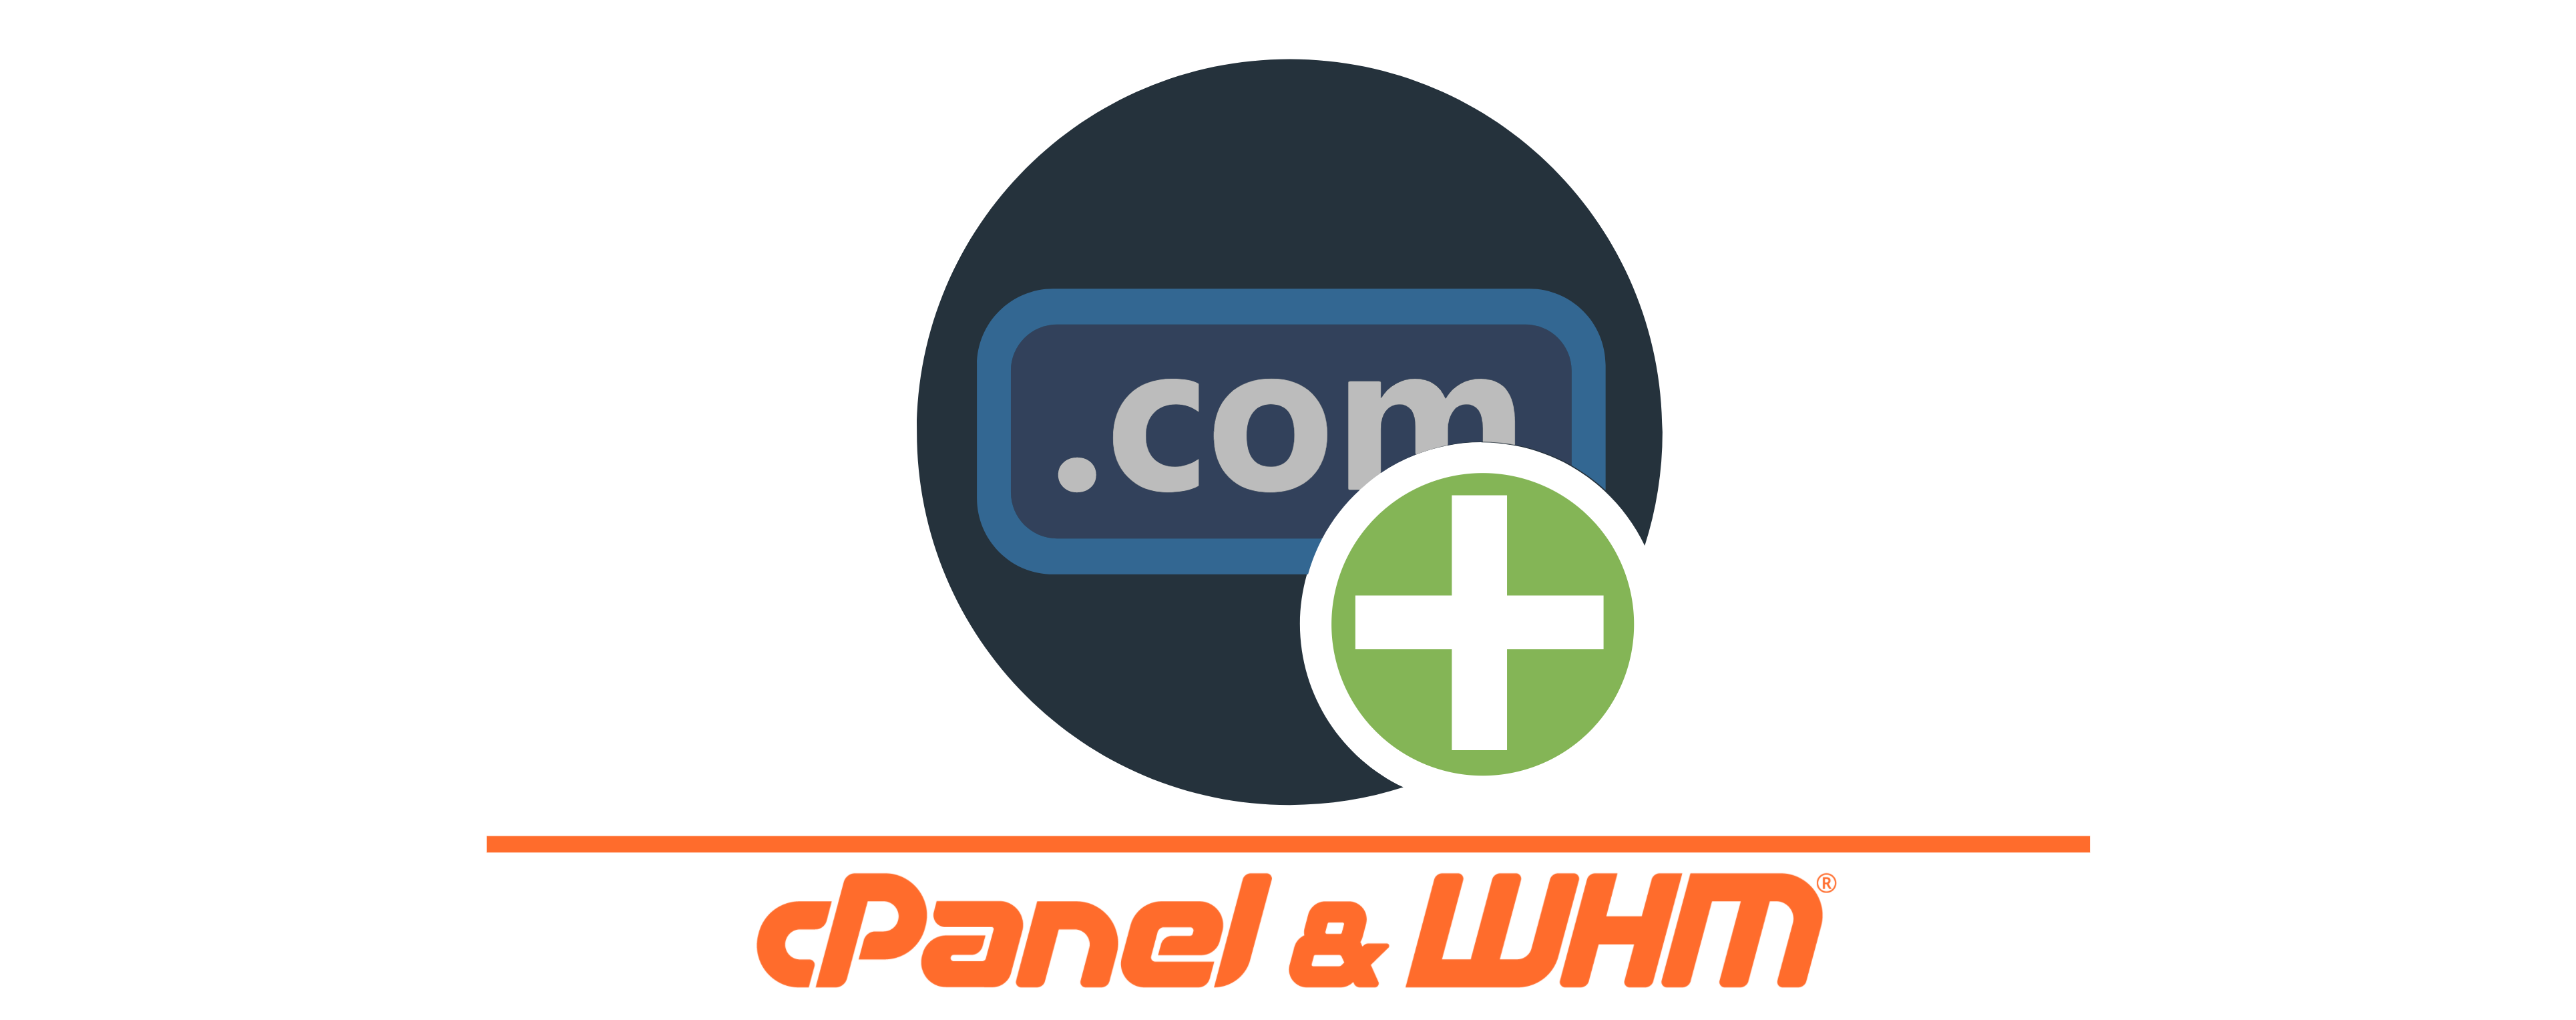 Managing Multiple Domains from a Single Hosting Account | cPanel Blog